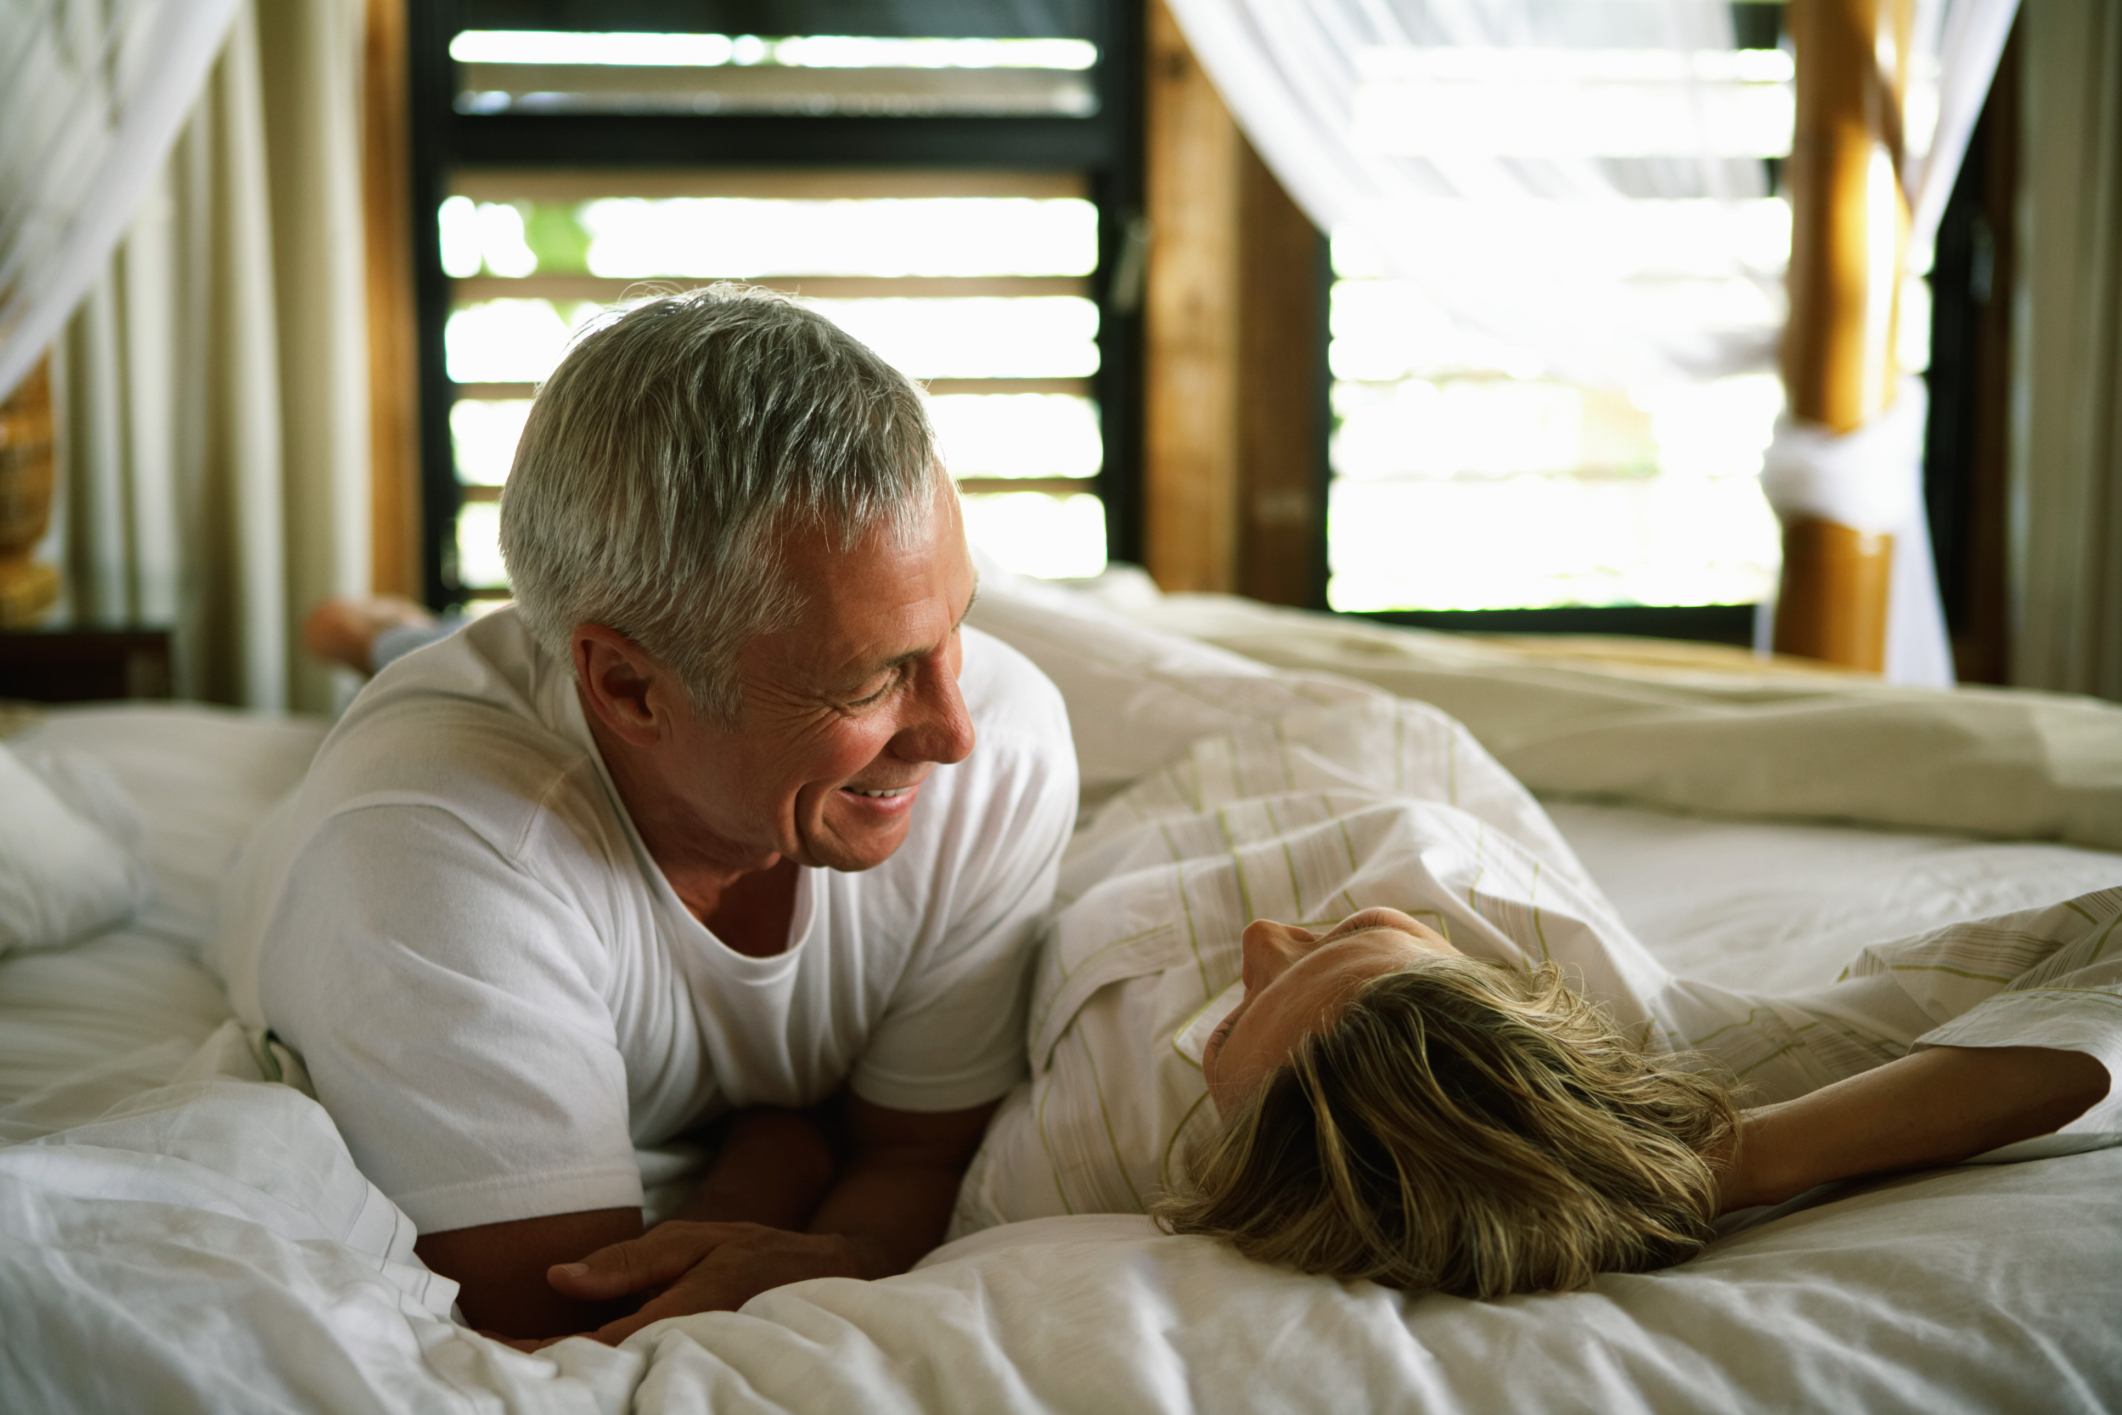 Exercise boosts bedroom performance, increases libido